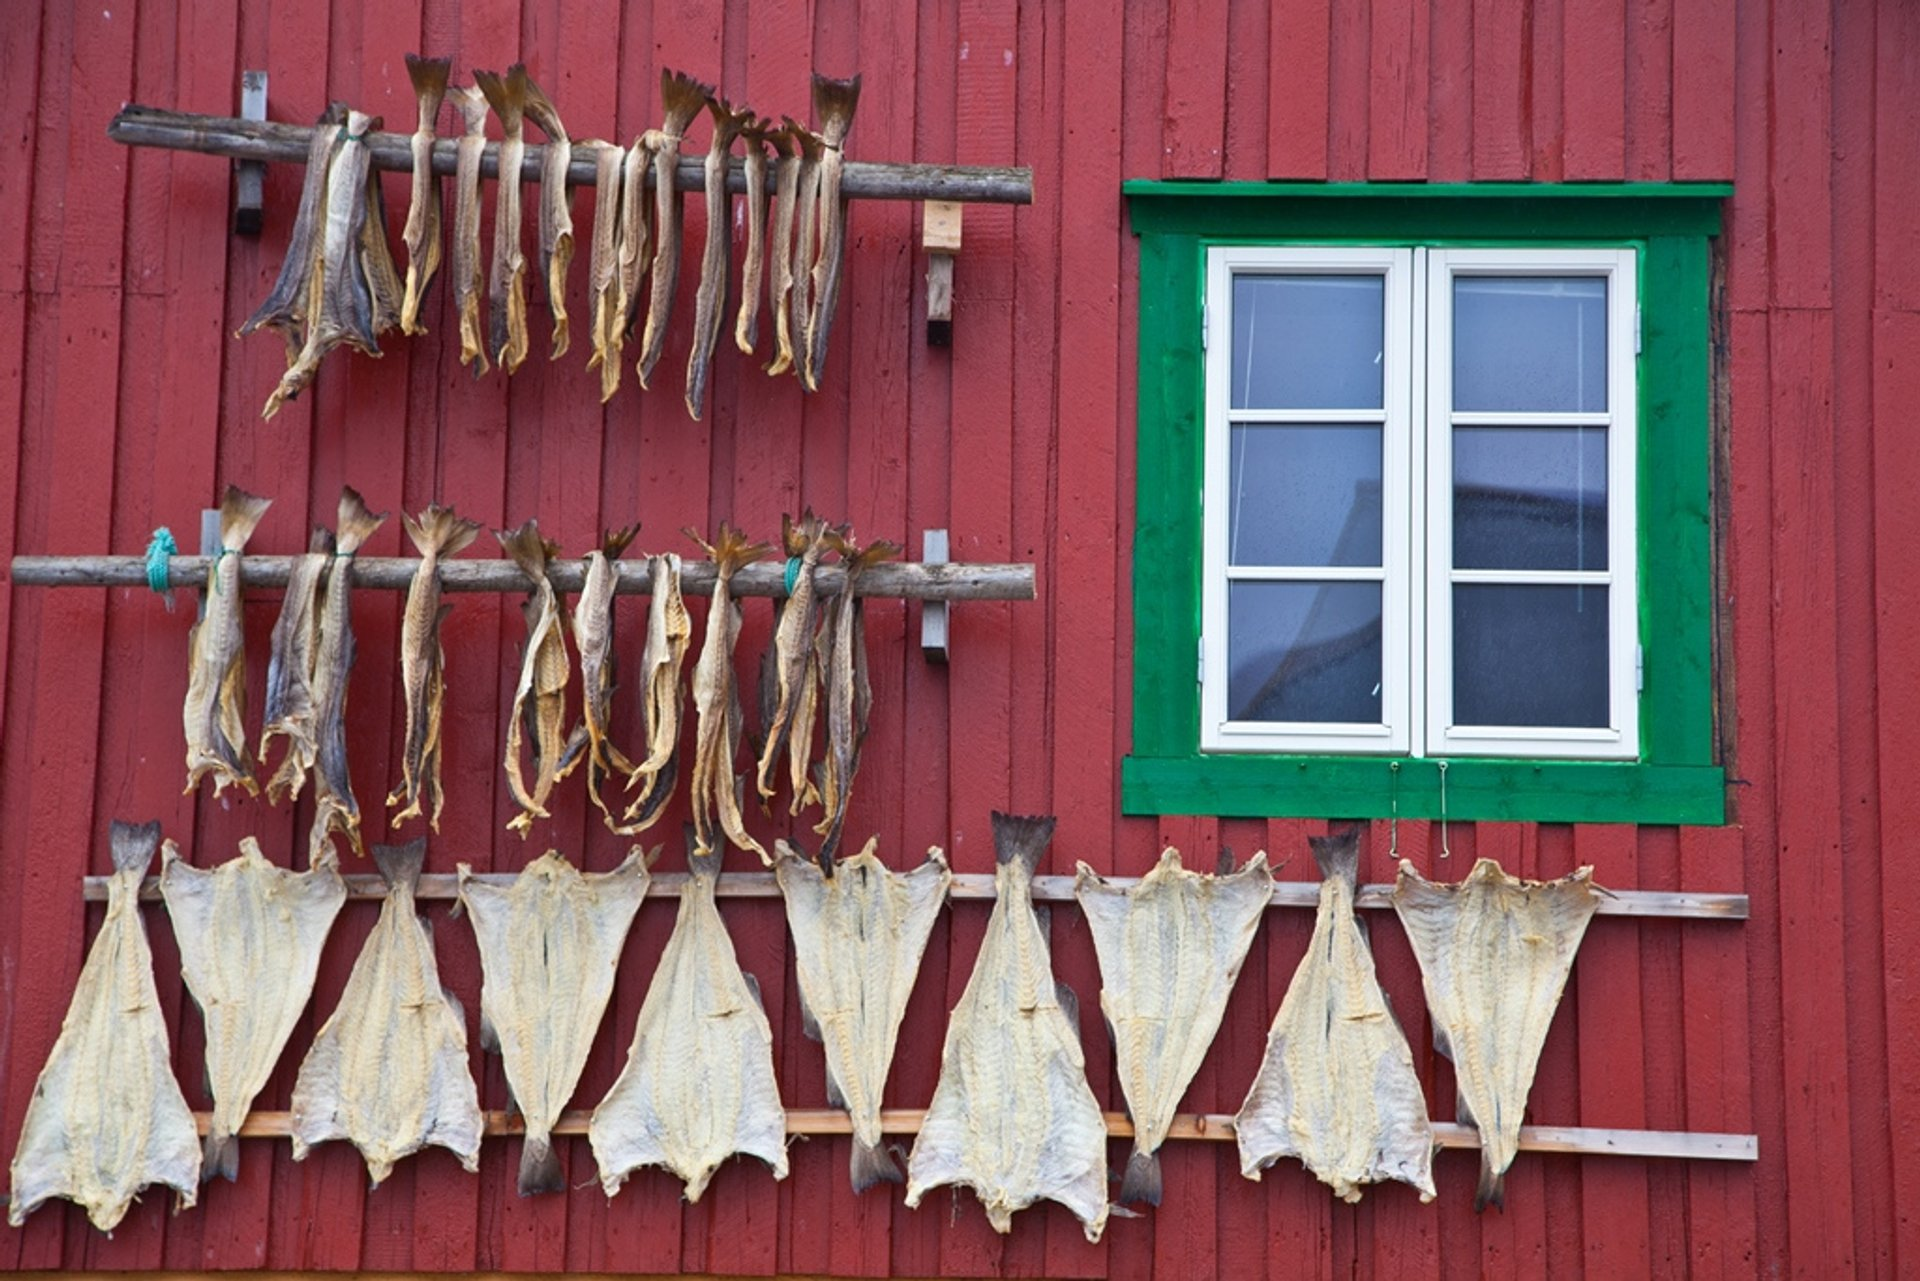 Dry Fish Rack in Norway 2020 - Best Time